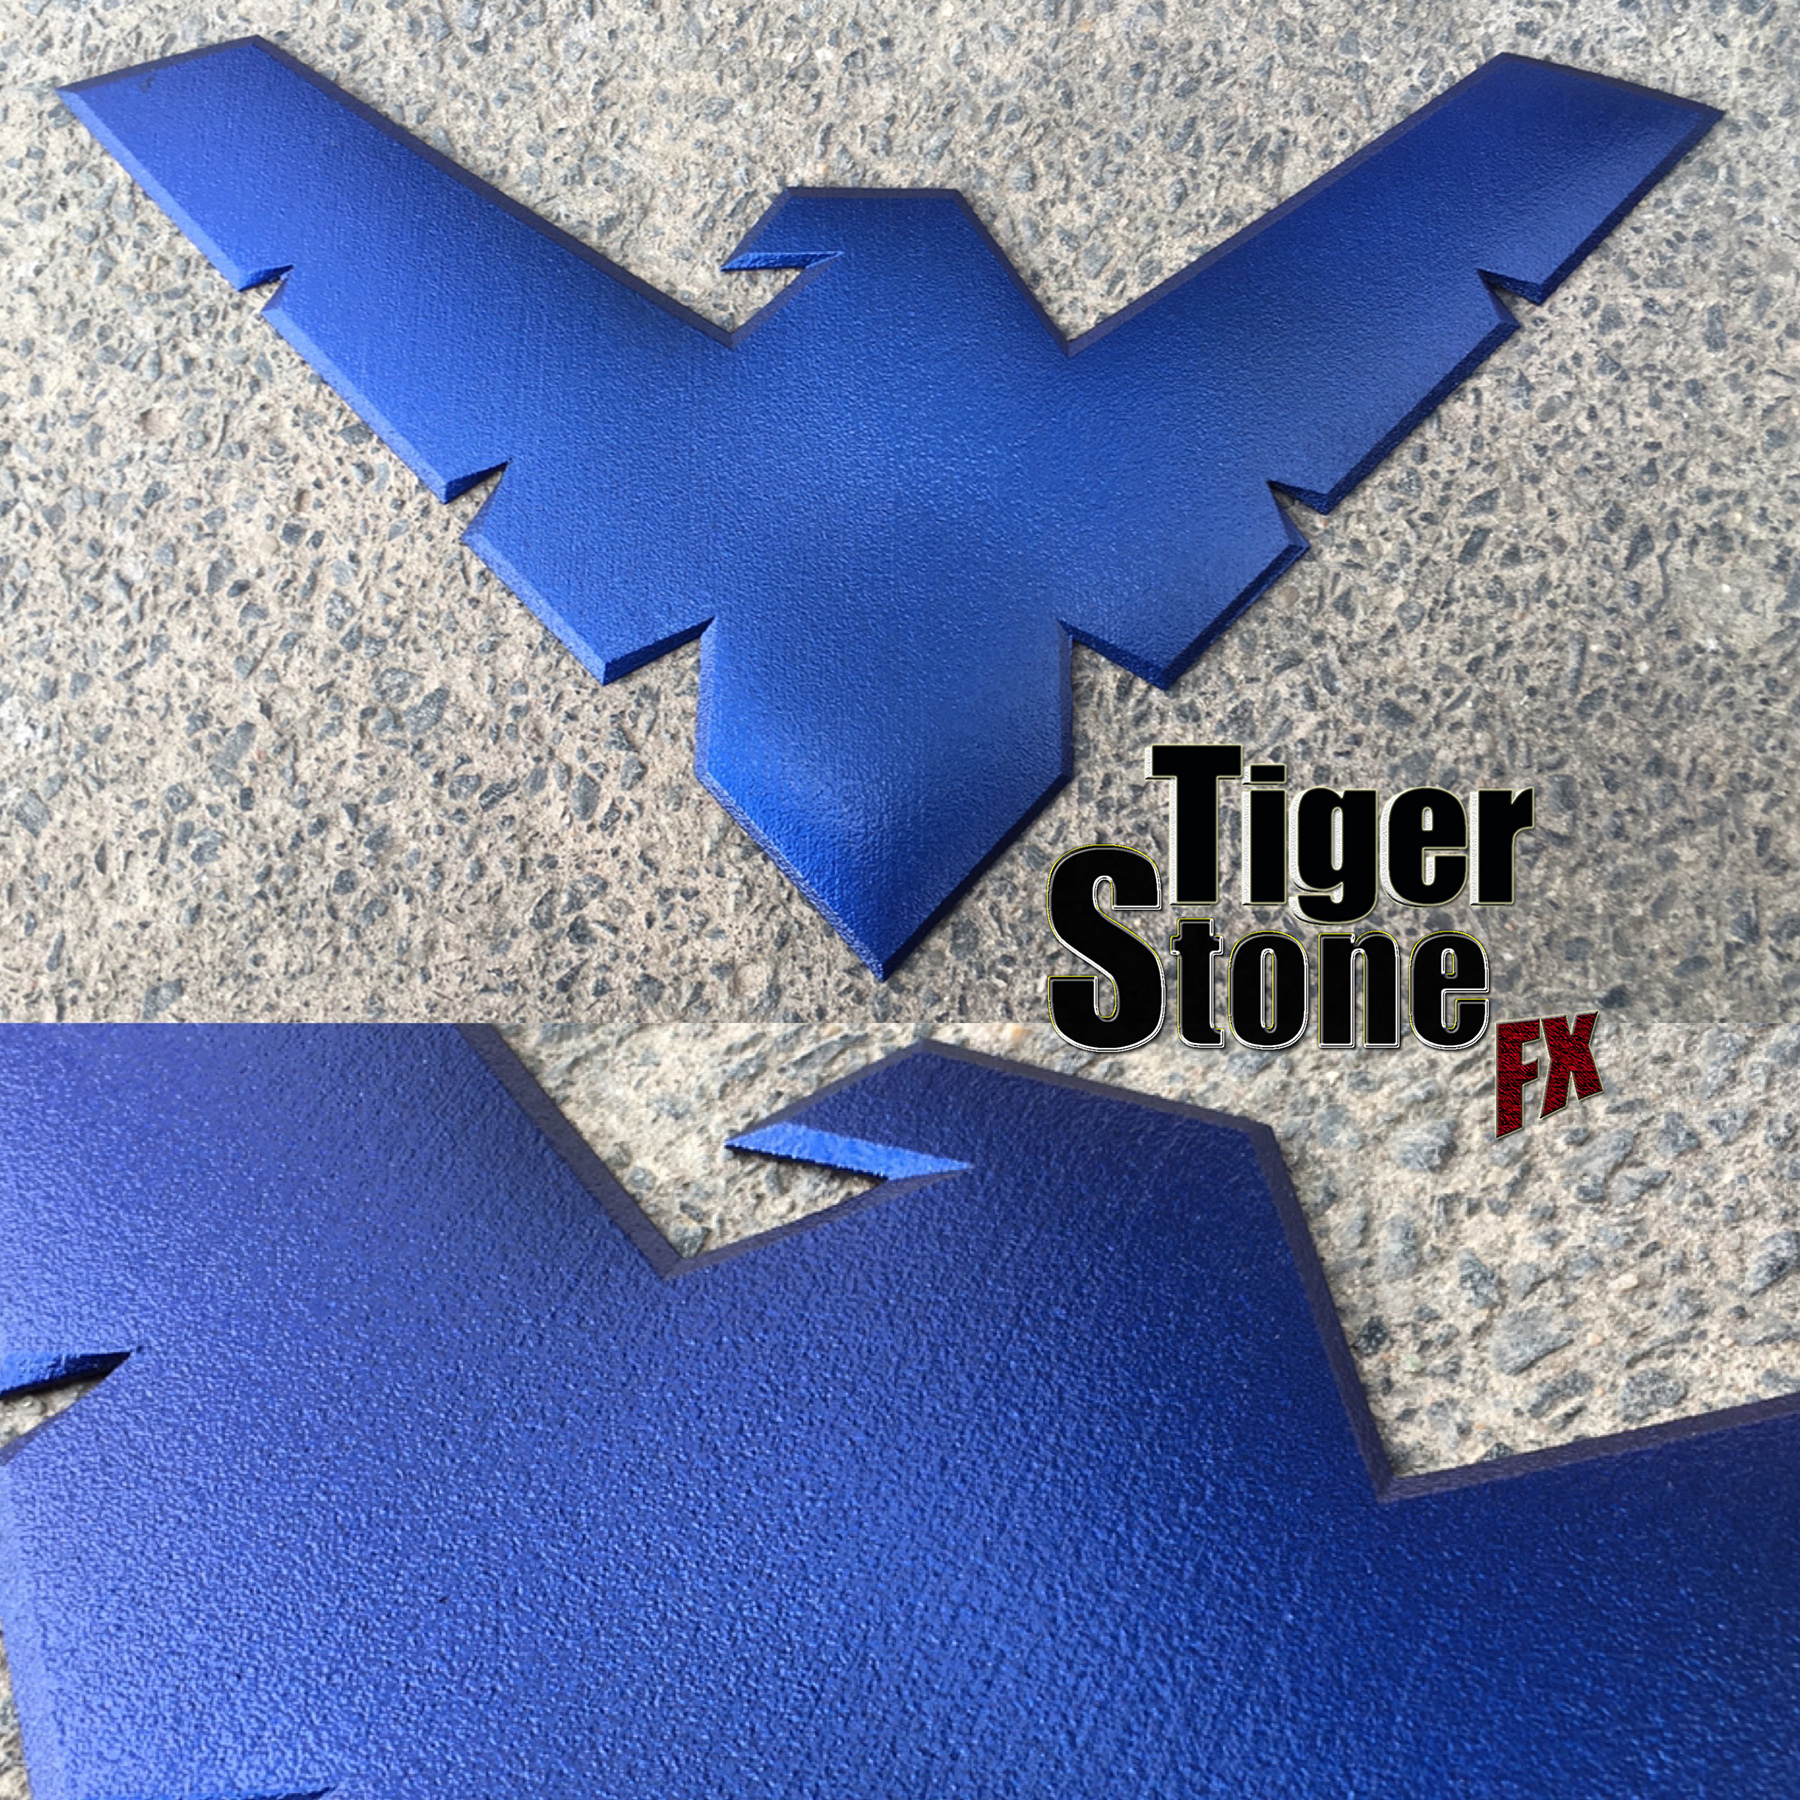 Tiger stone fx nightwing emblem buycottarizona Choice Image